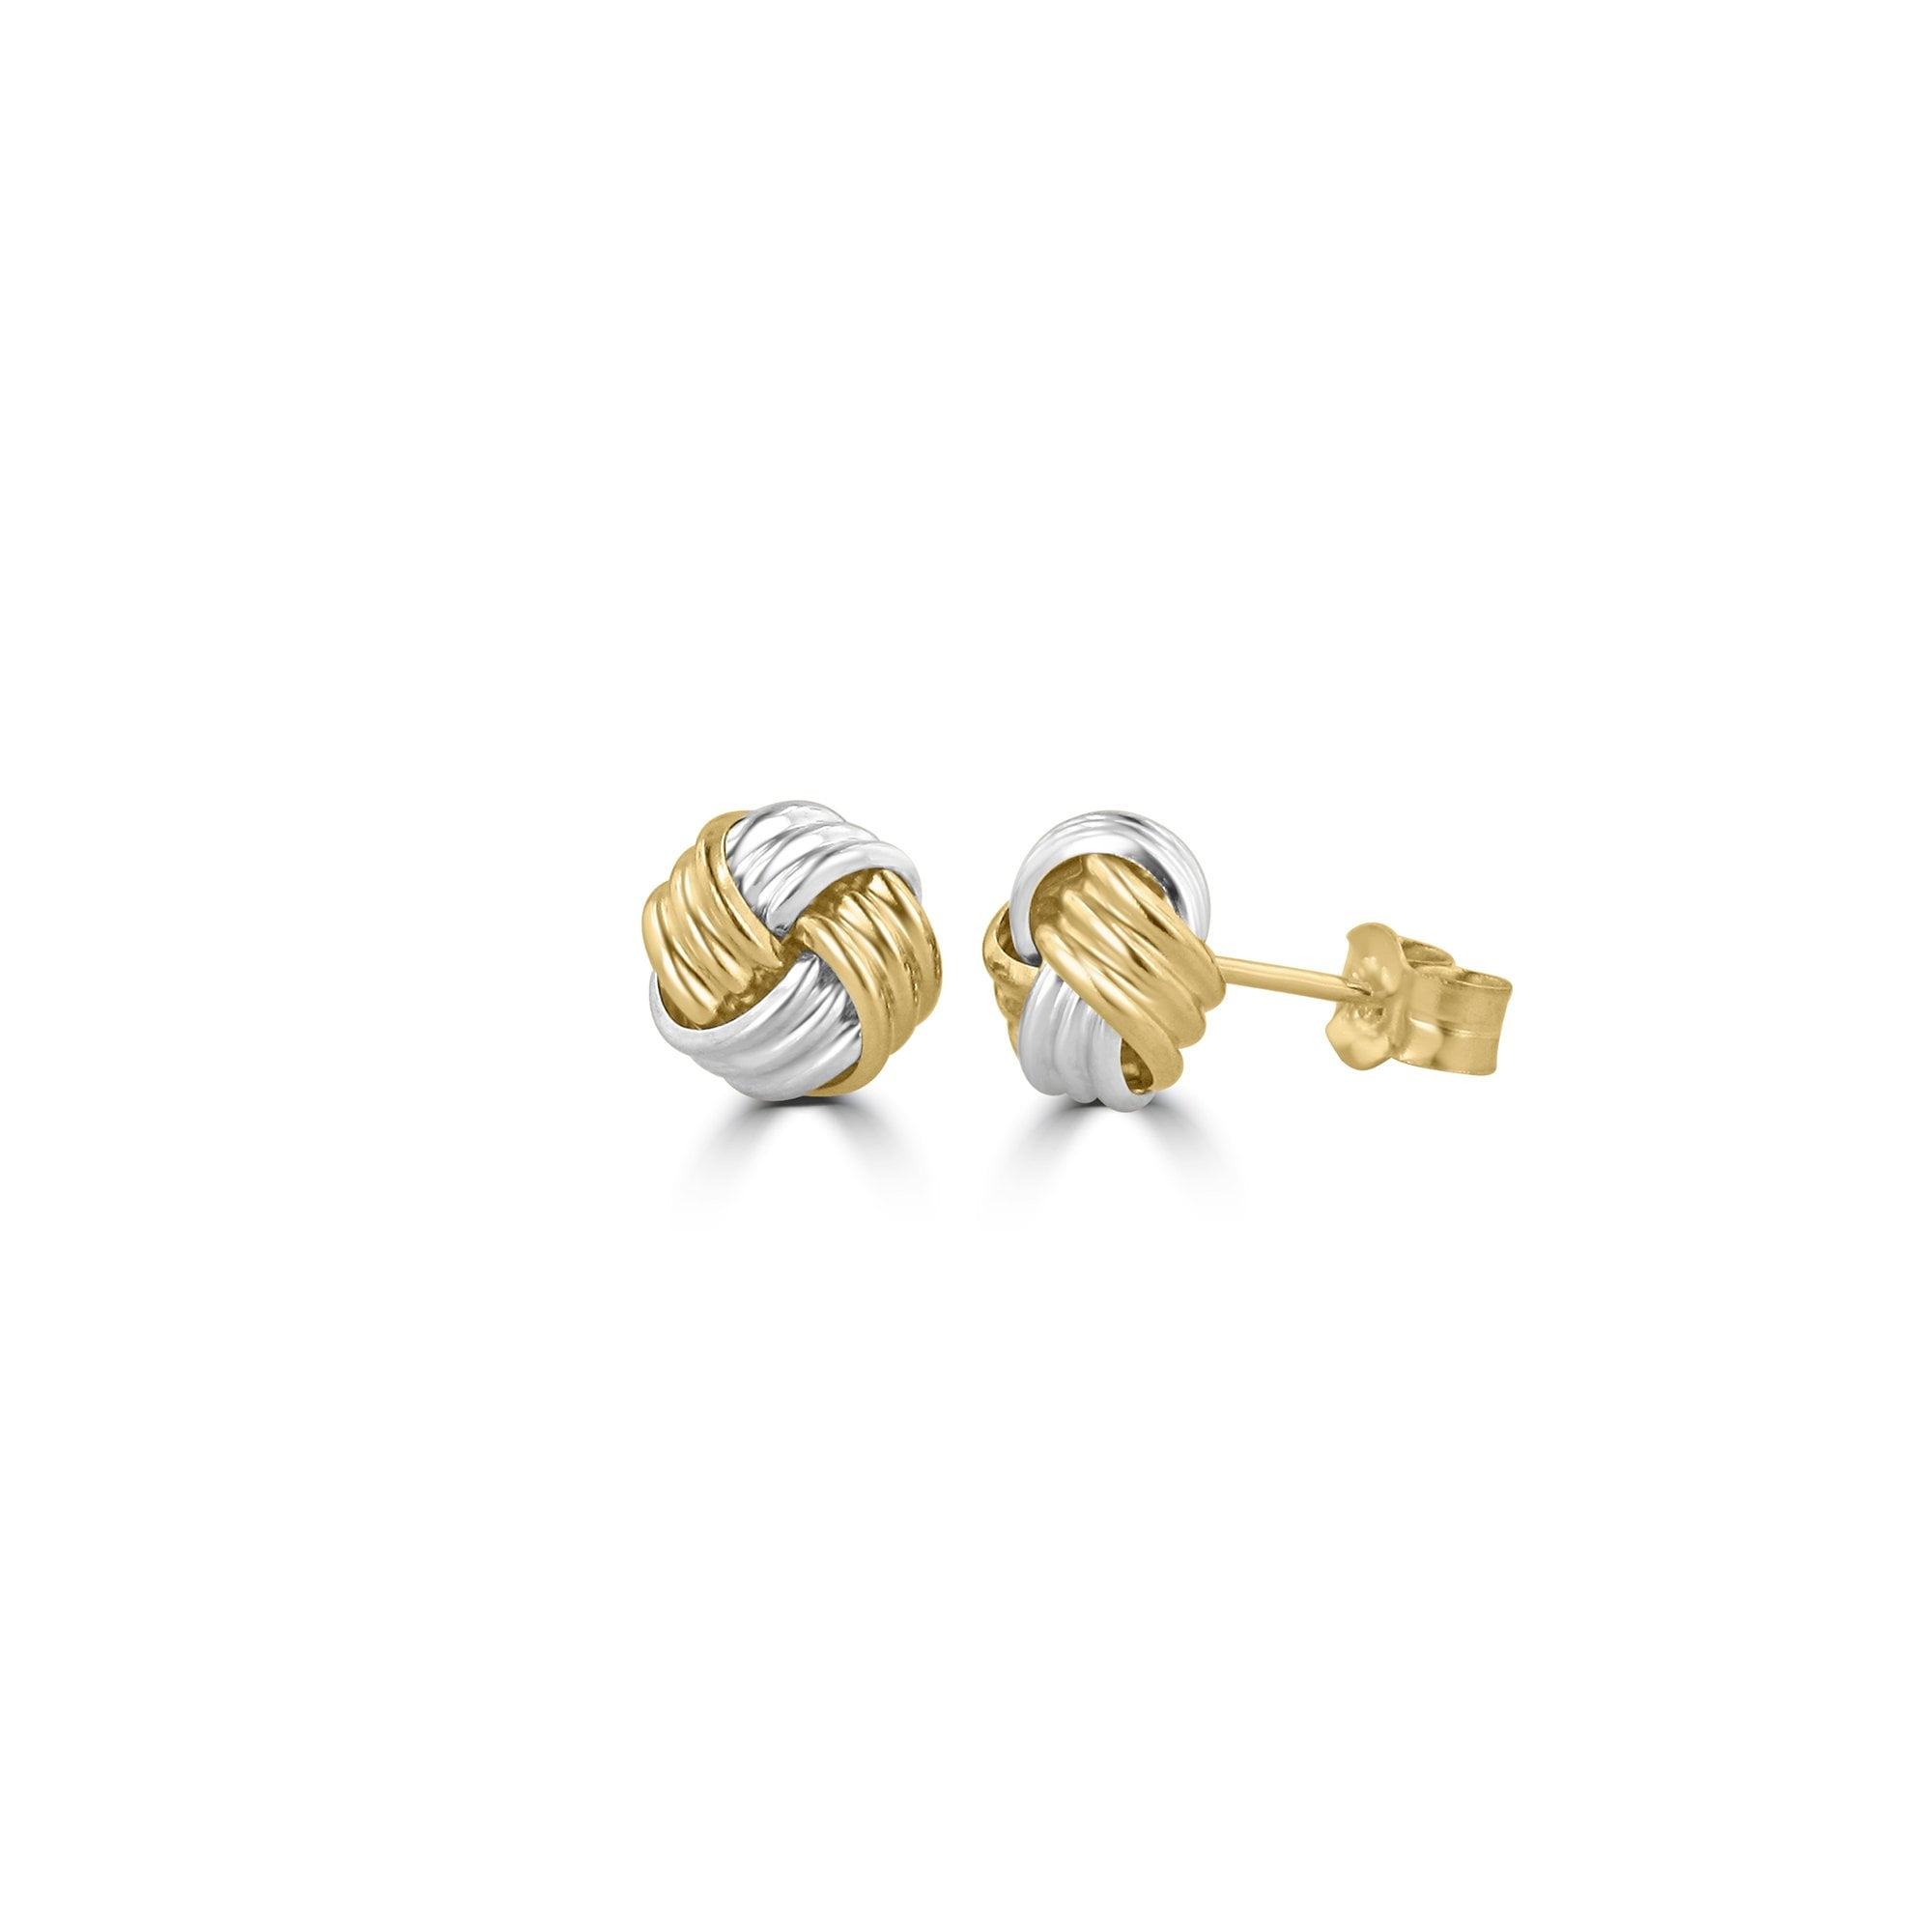 2579549bb 9ct Yellow and White Gold Knot Stud Earrings - Womens from Avanti of  Ashbourne Ltd UK